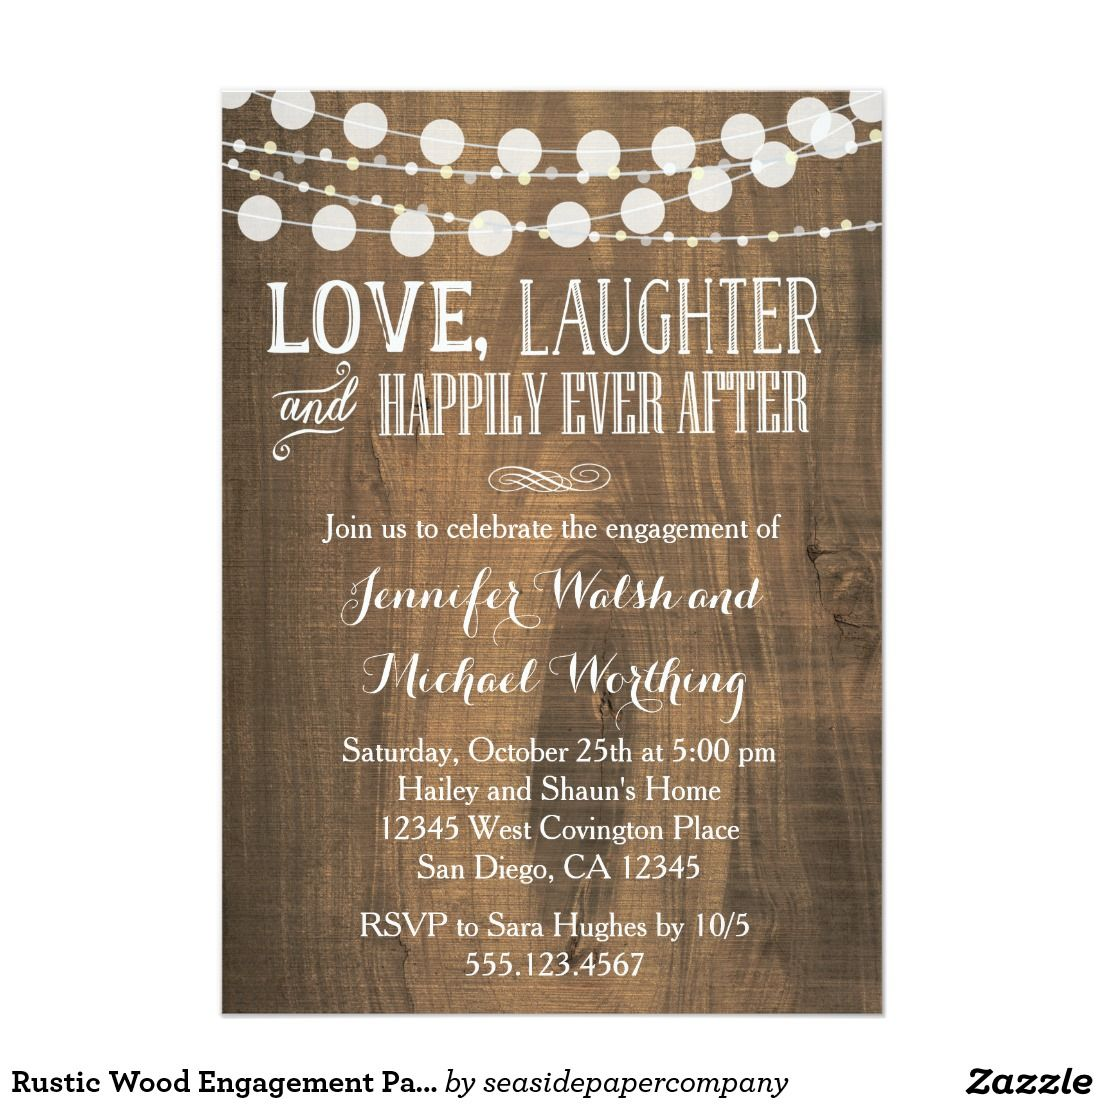 Rustic Wood Engagement Party Invitation | Engagement party ...